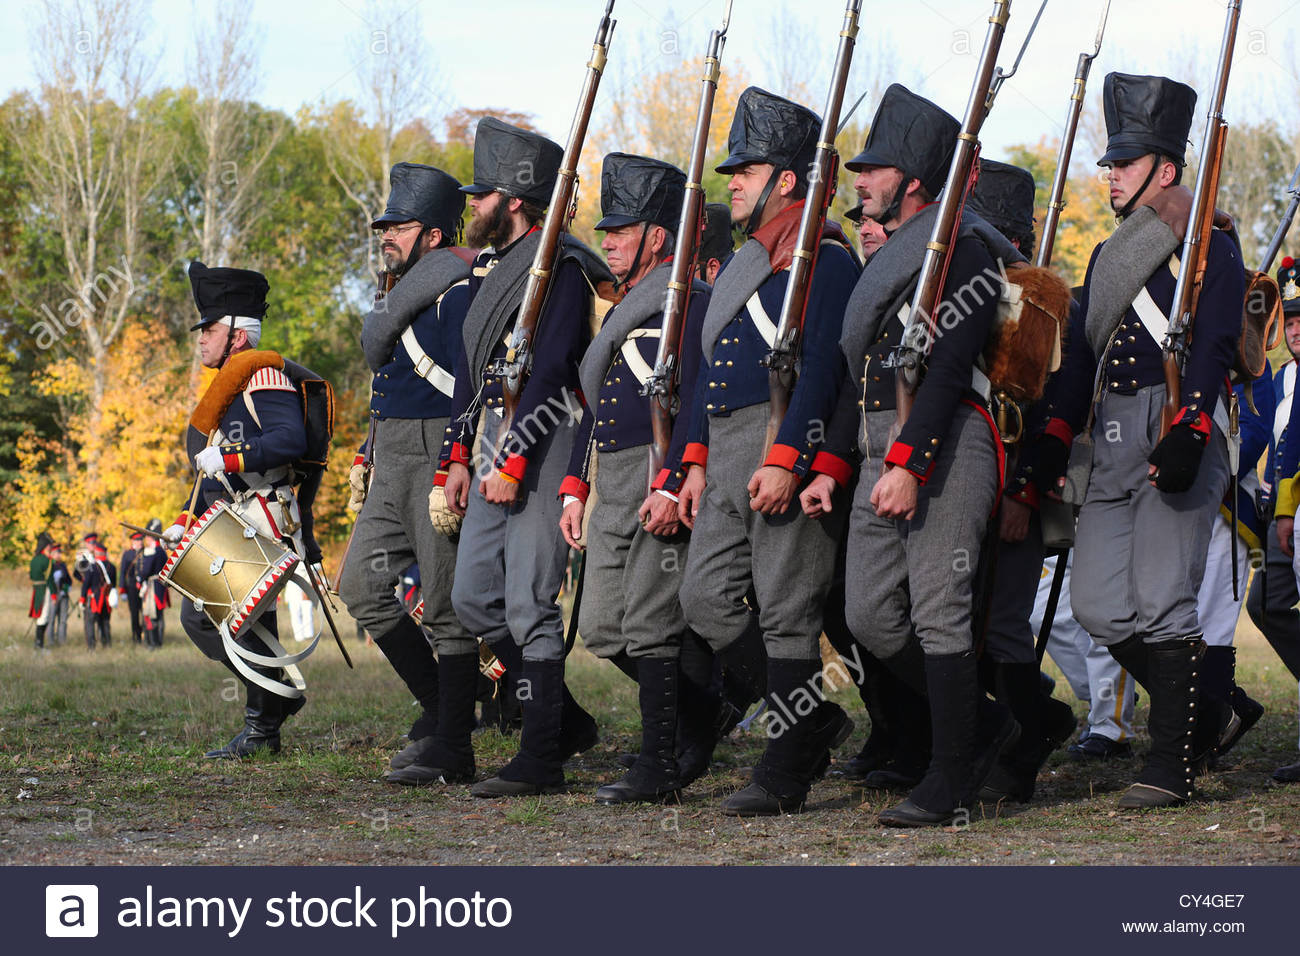 Army clipart army uniform. Prussian clipground troops stock